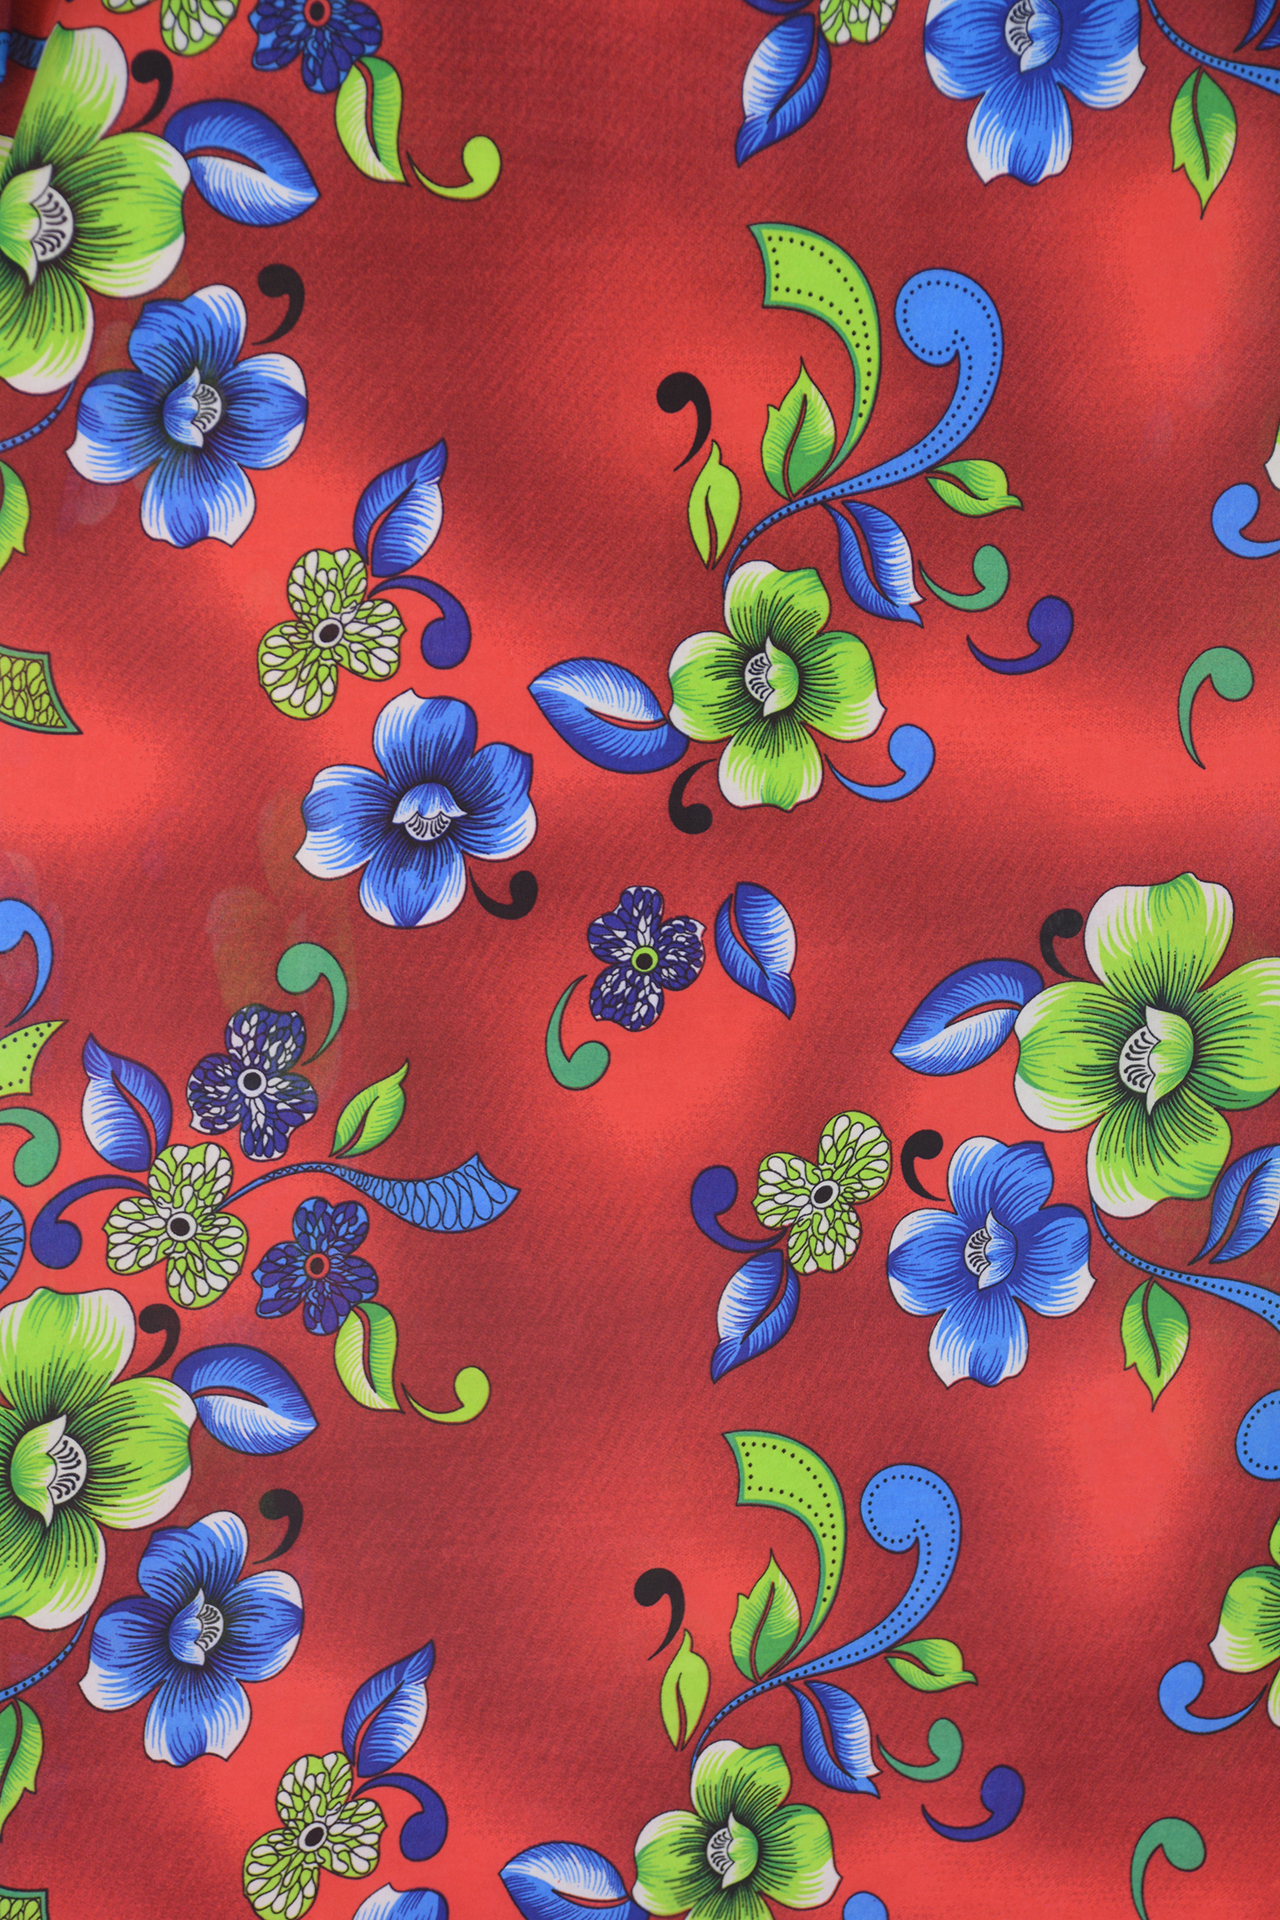 Floral Clovers Red and Green/Blue Print 1